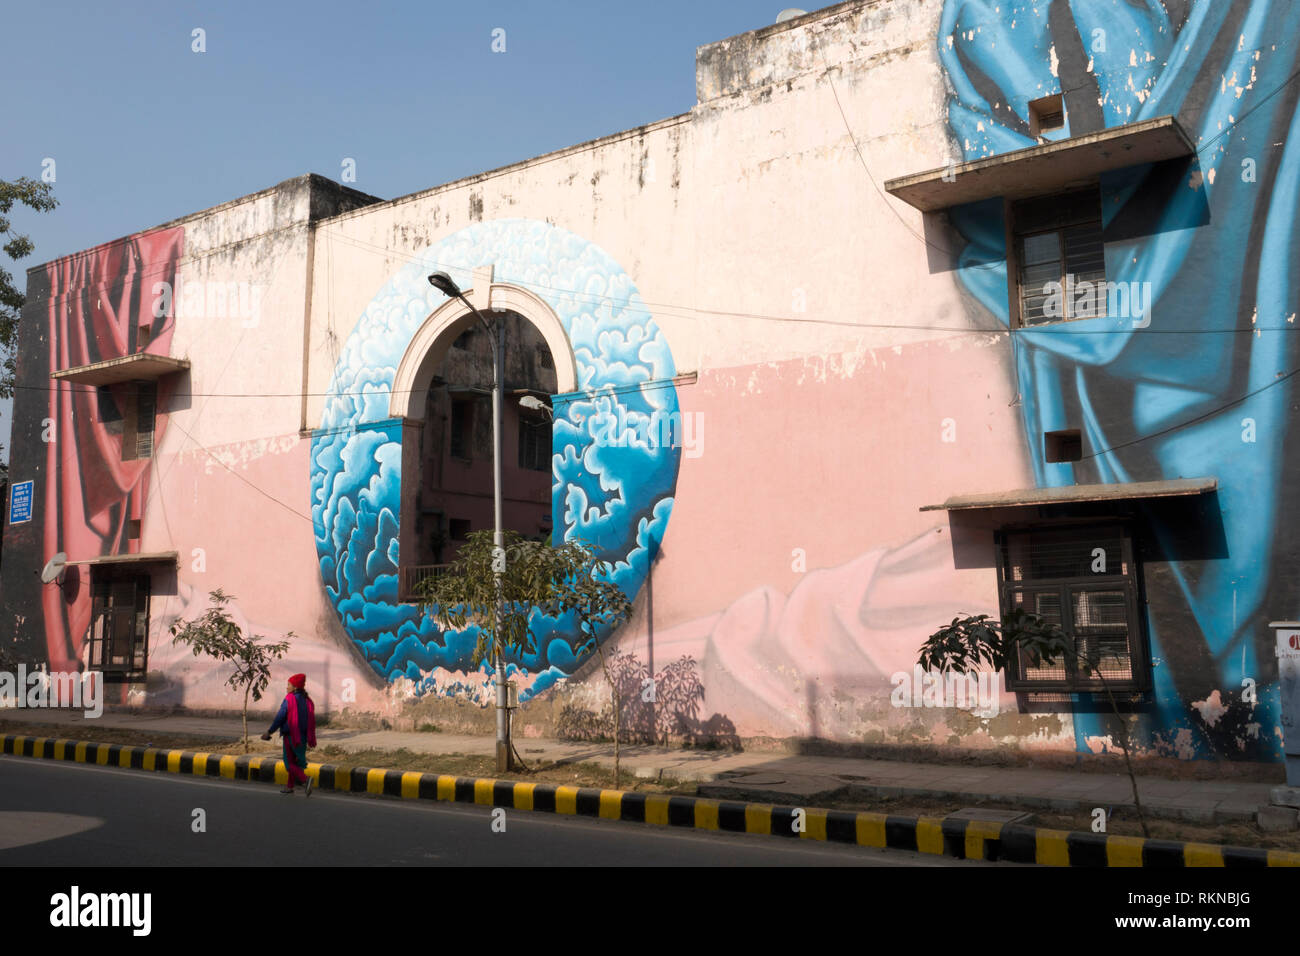 Woman walks past a large mural painted on side of building in Lodhi Colony, New Delhi, India - Stock Image